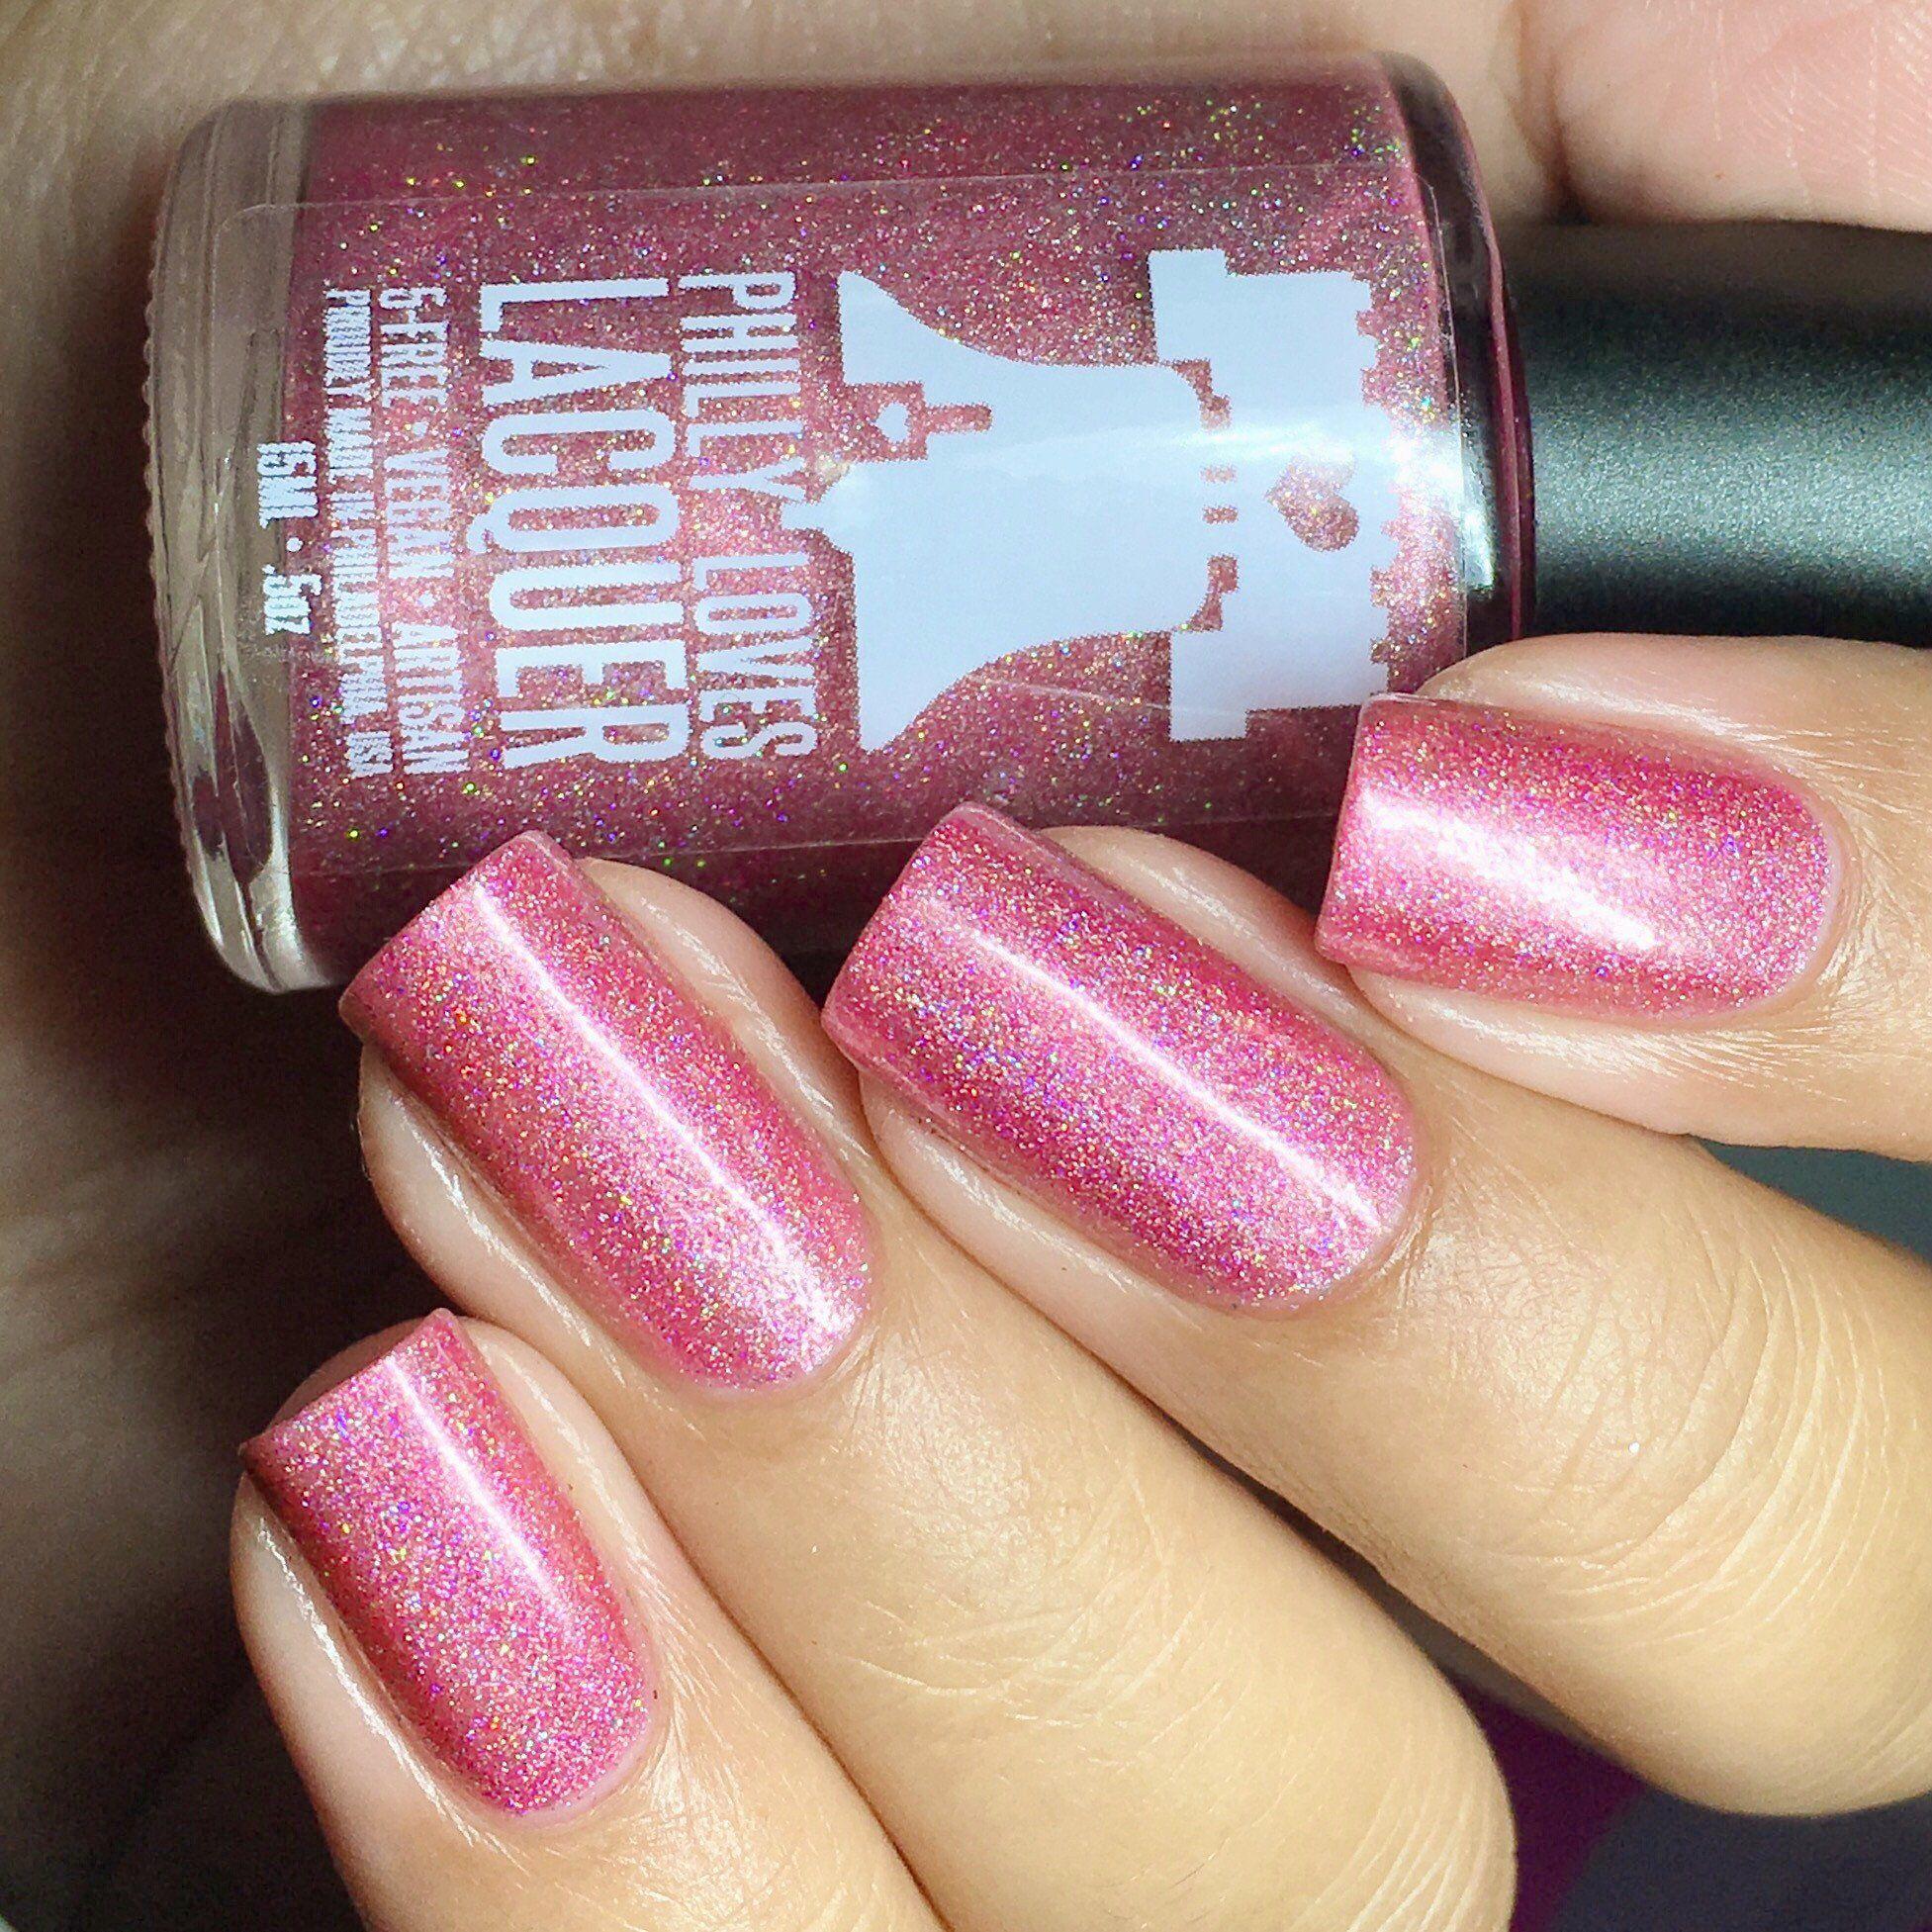 Philly Loves Lacquer - Aww Honey, You Baked! Dark Pink Holographic ...